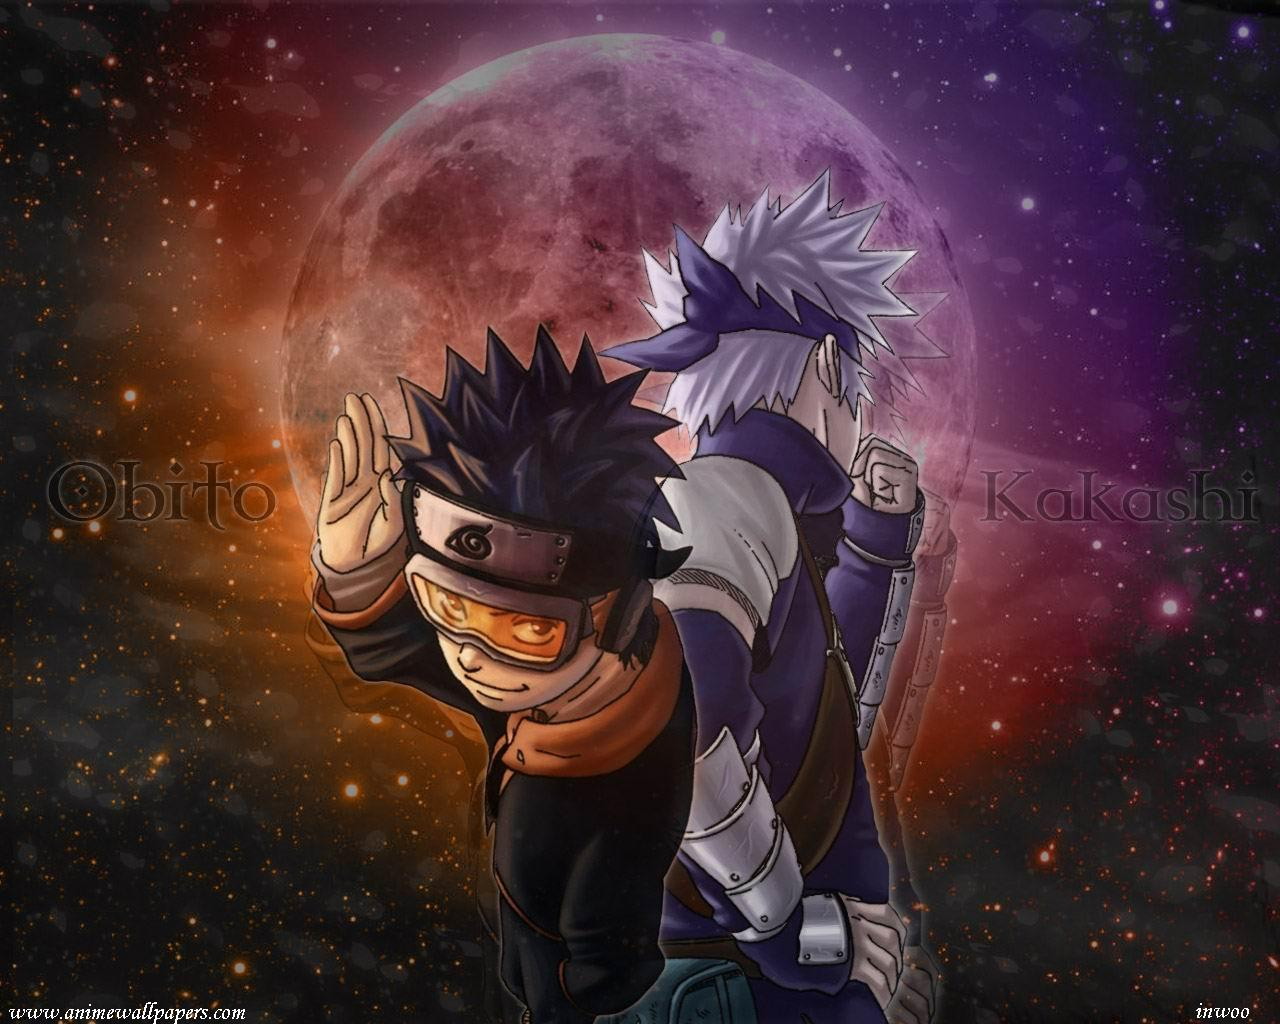 Obito Uchiha Wallpapers 18